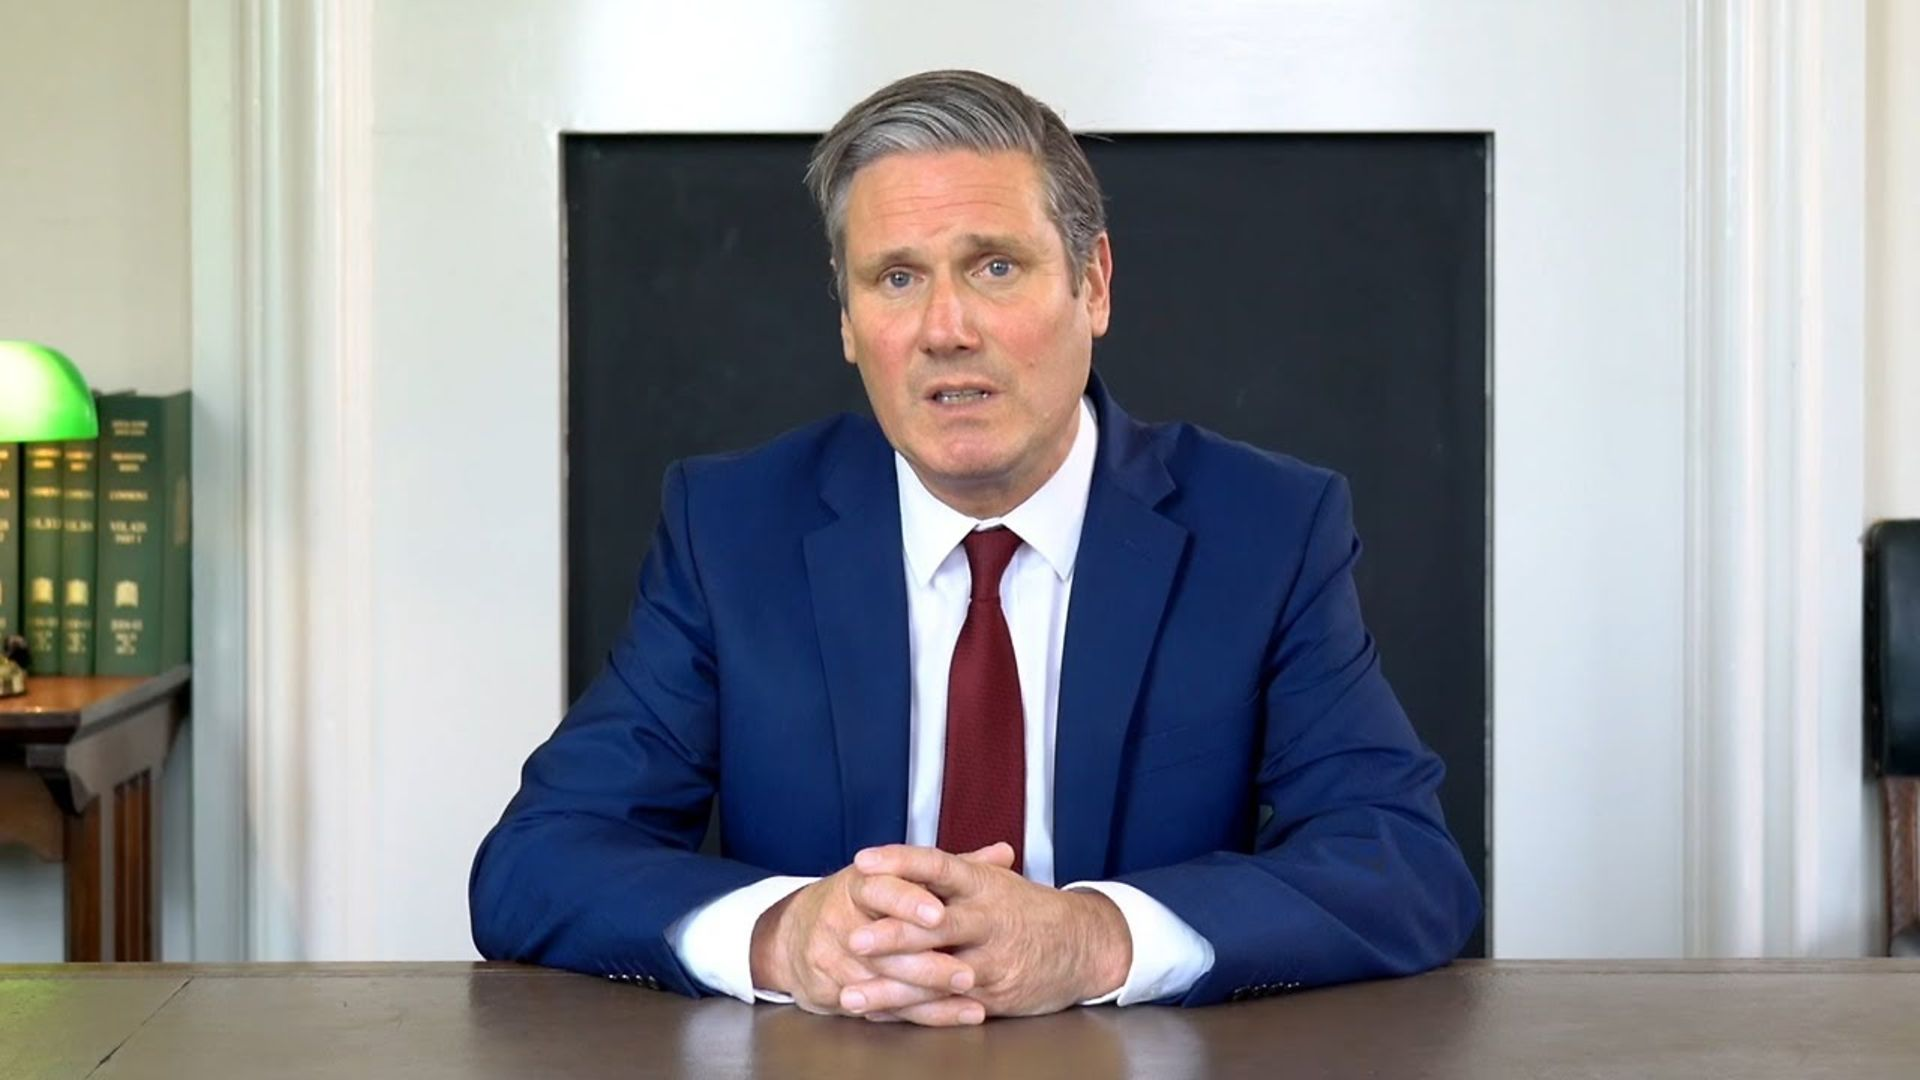 Keir Starmer during his last televised address. - Credit: BBC